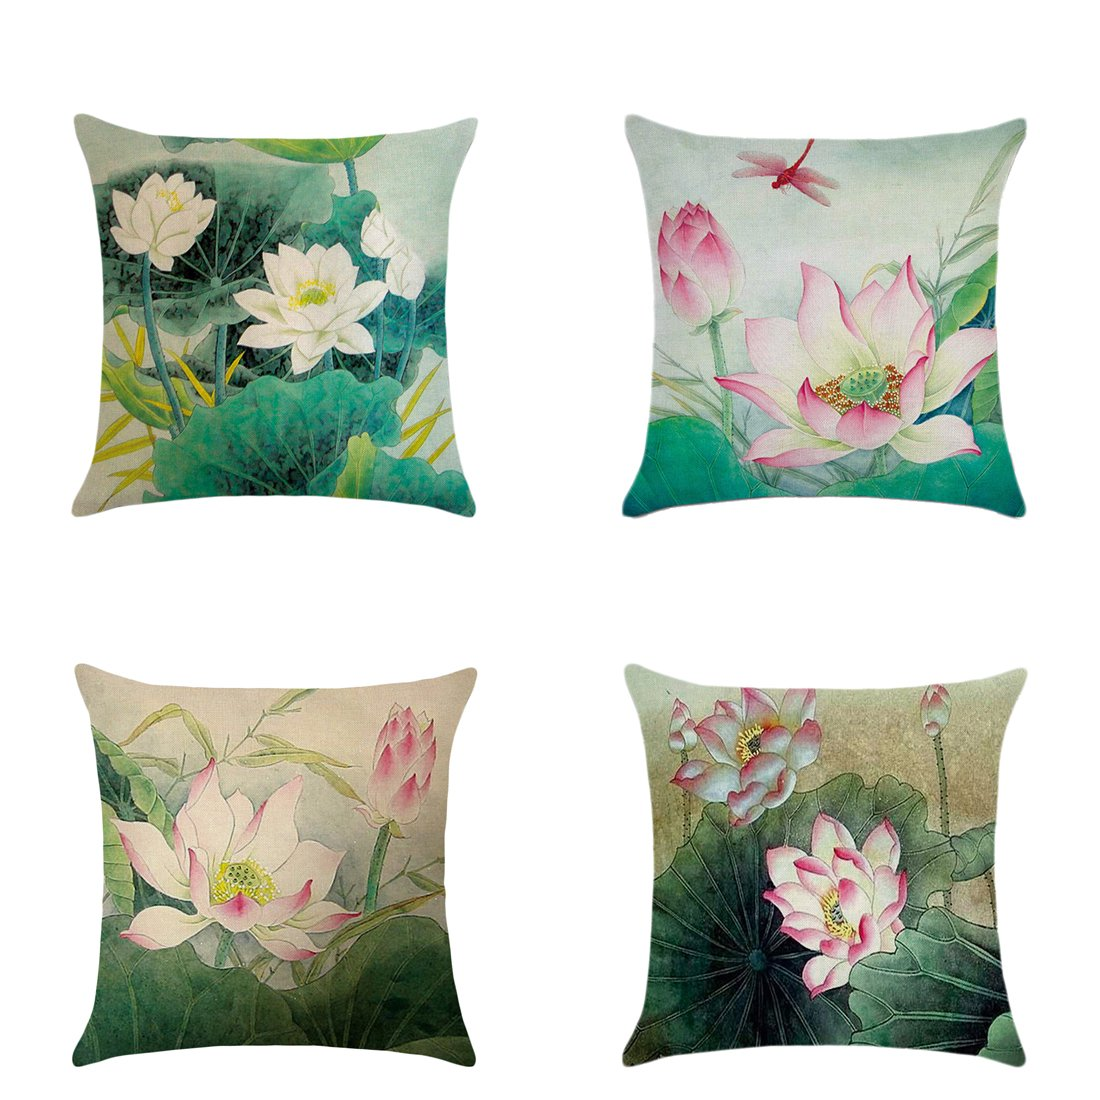 4pc Outdoor Living 45cm x 45cm LOTUS FLOWER Decorative Throw Pillow Cushion Cover for Couch, Bed, Sofa or Patio, No Insert